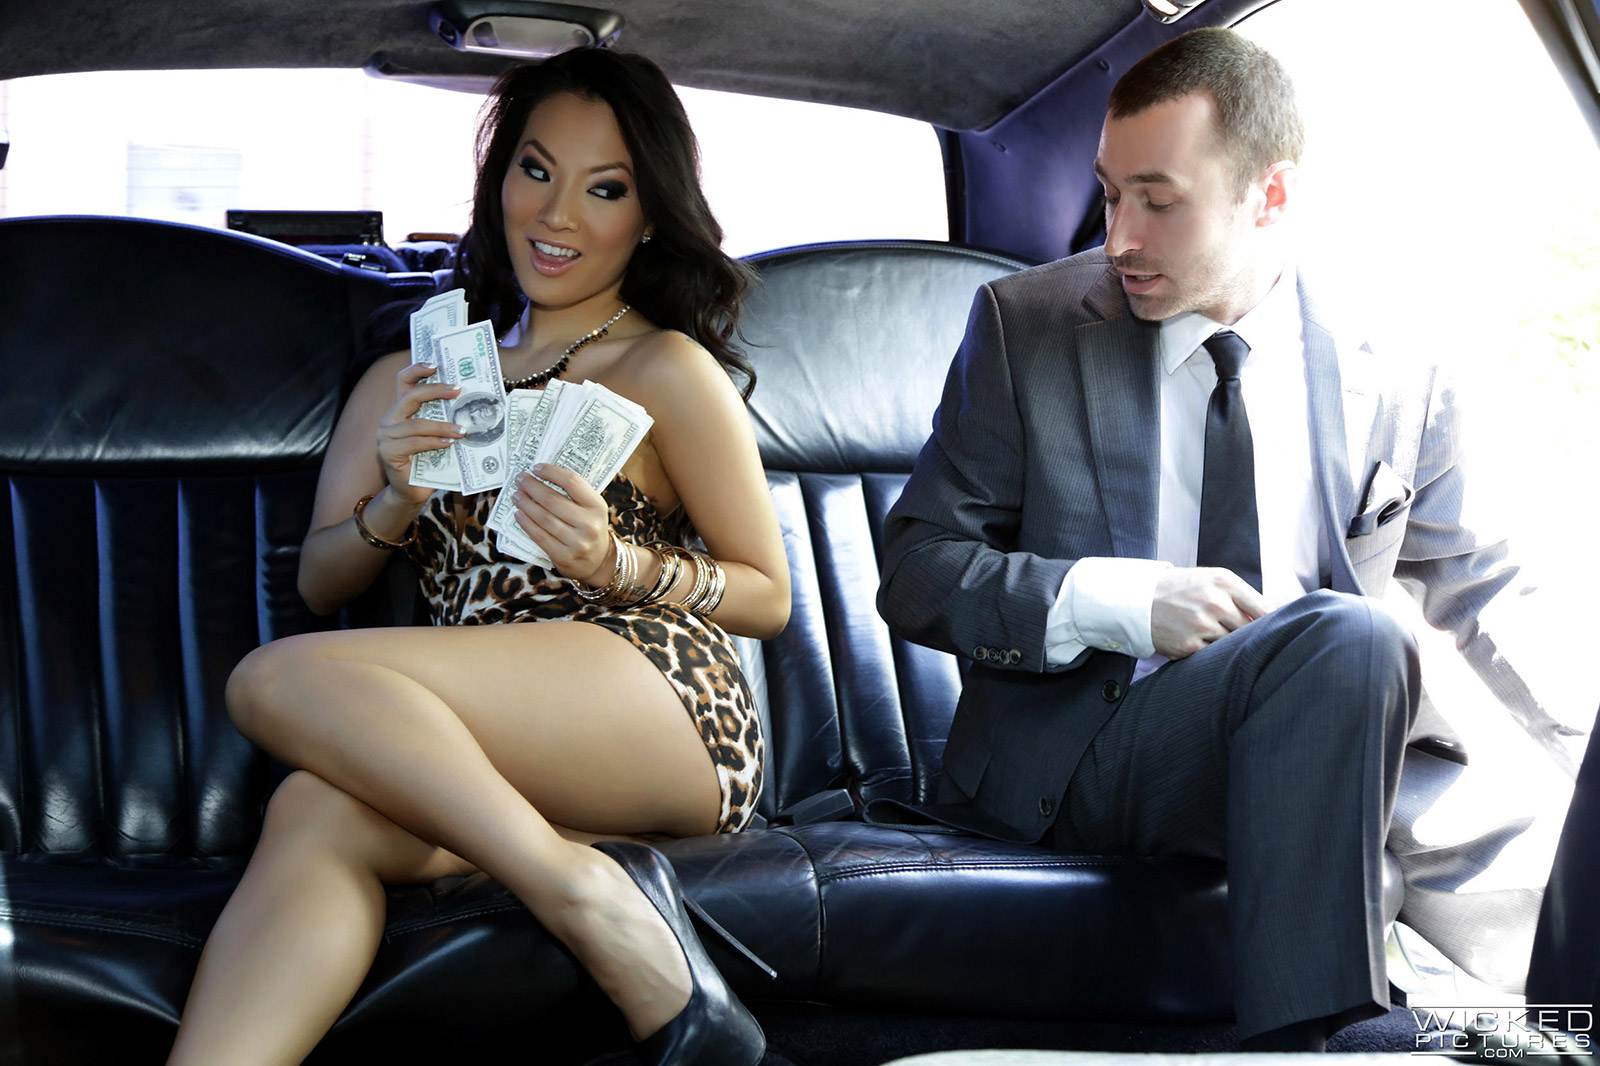 Congratulate, simply sex in limousine paid sorry, not absolutely